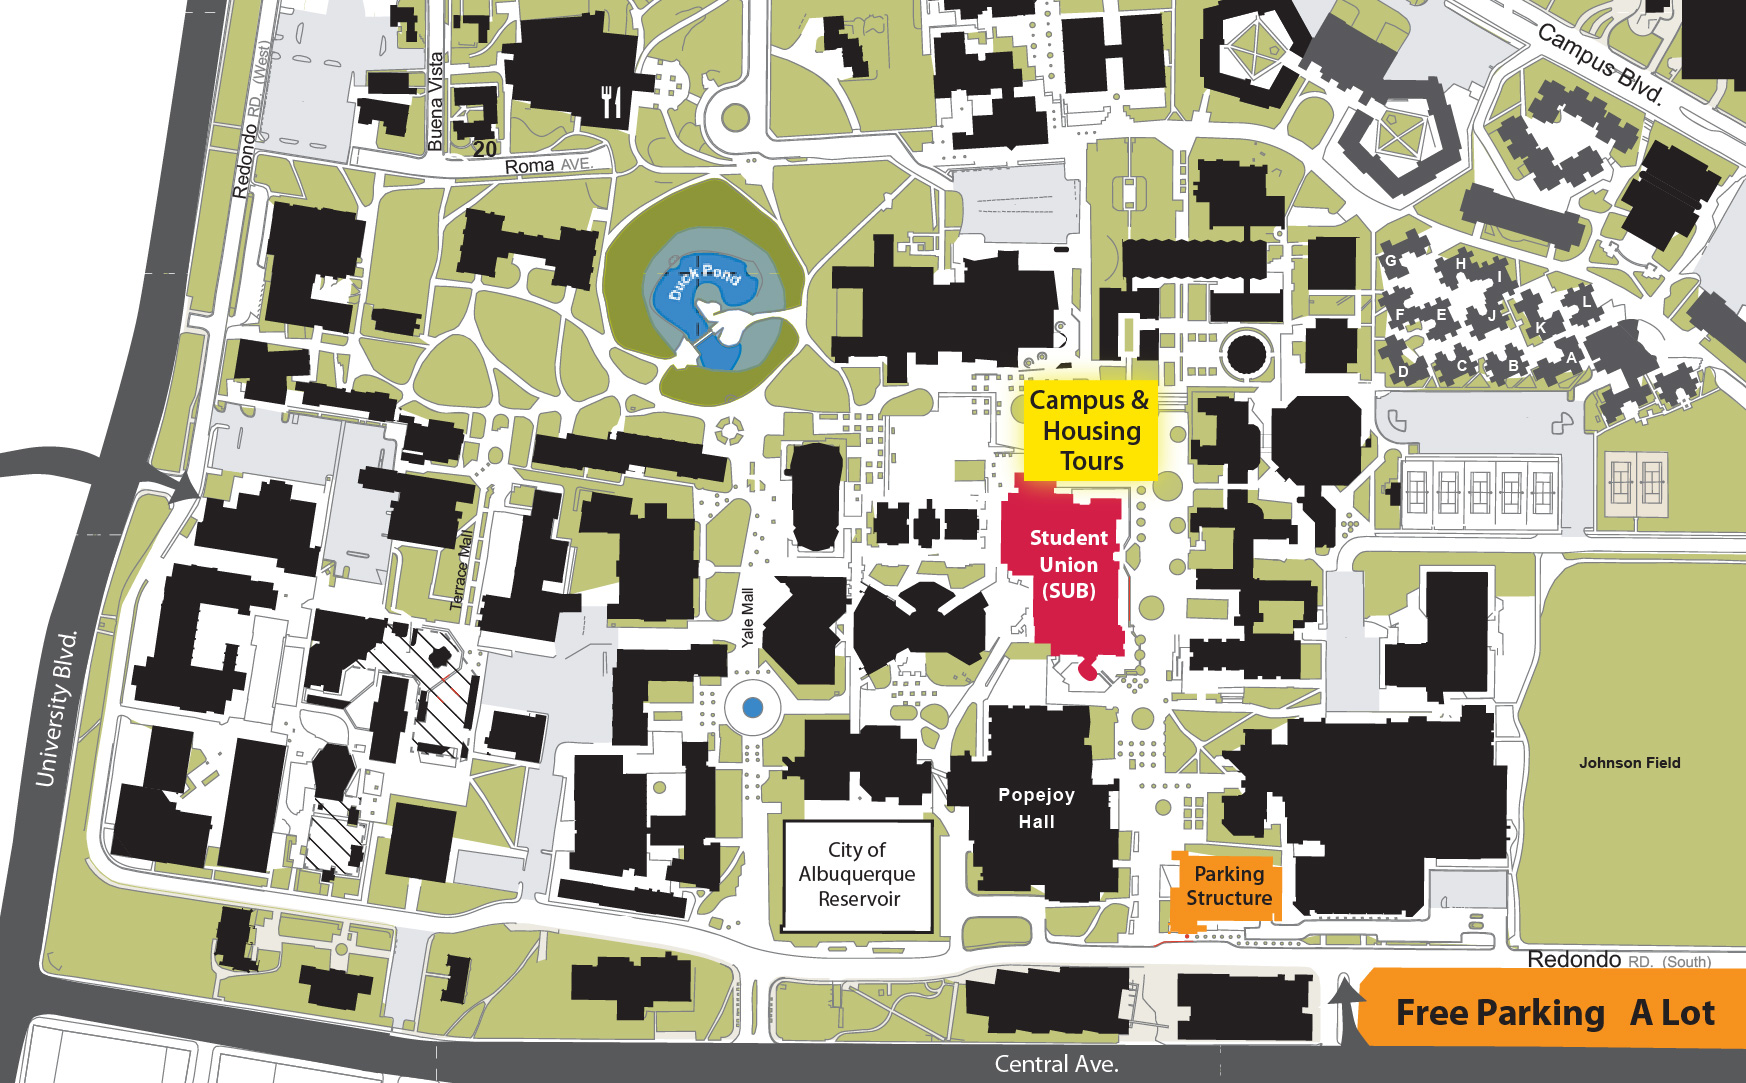 Unm Main Campus Map Home | Fall Preview 2018 | University of New Mexico Unm Main Campus Map